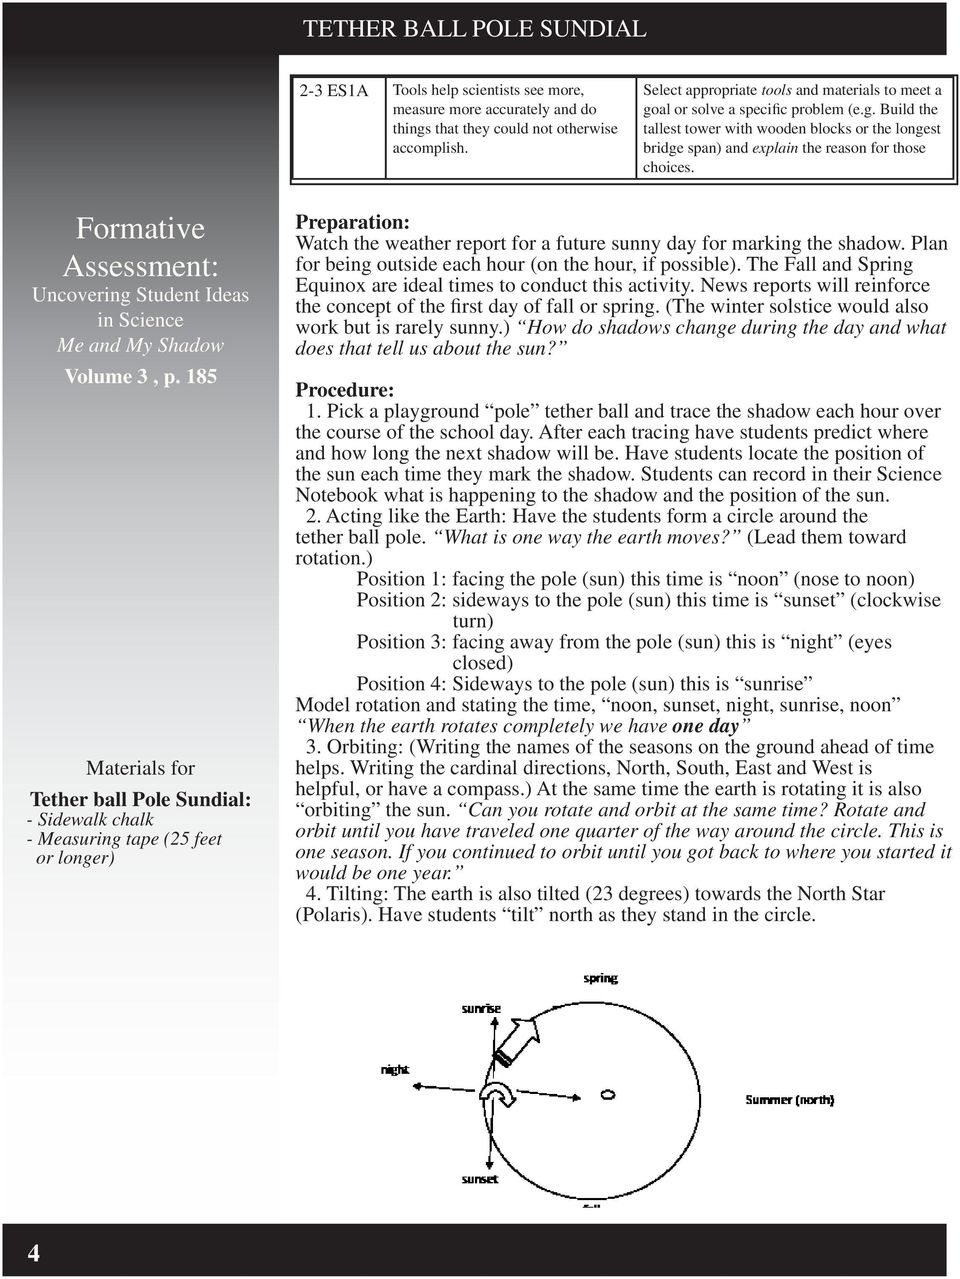 Volume 3, p. 185 Tether ball Pole Sundial: - Sidewalk chalk - Measuring tape (25 feet or longer) Watch the weather report for a future sunny day for marking the shadow.